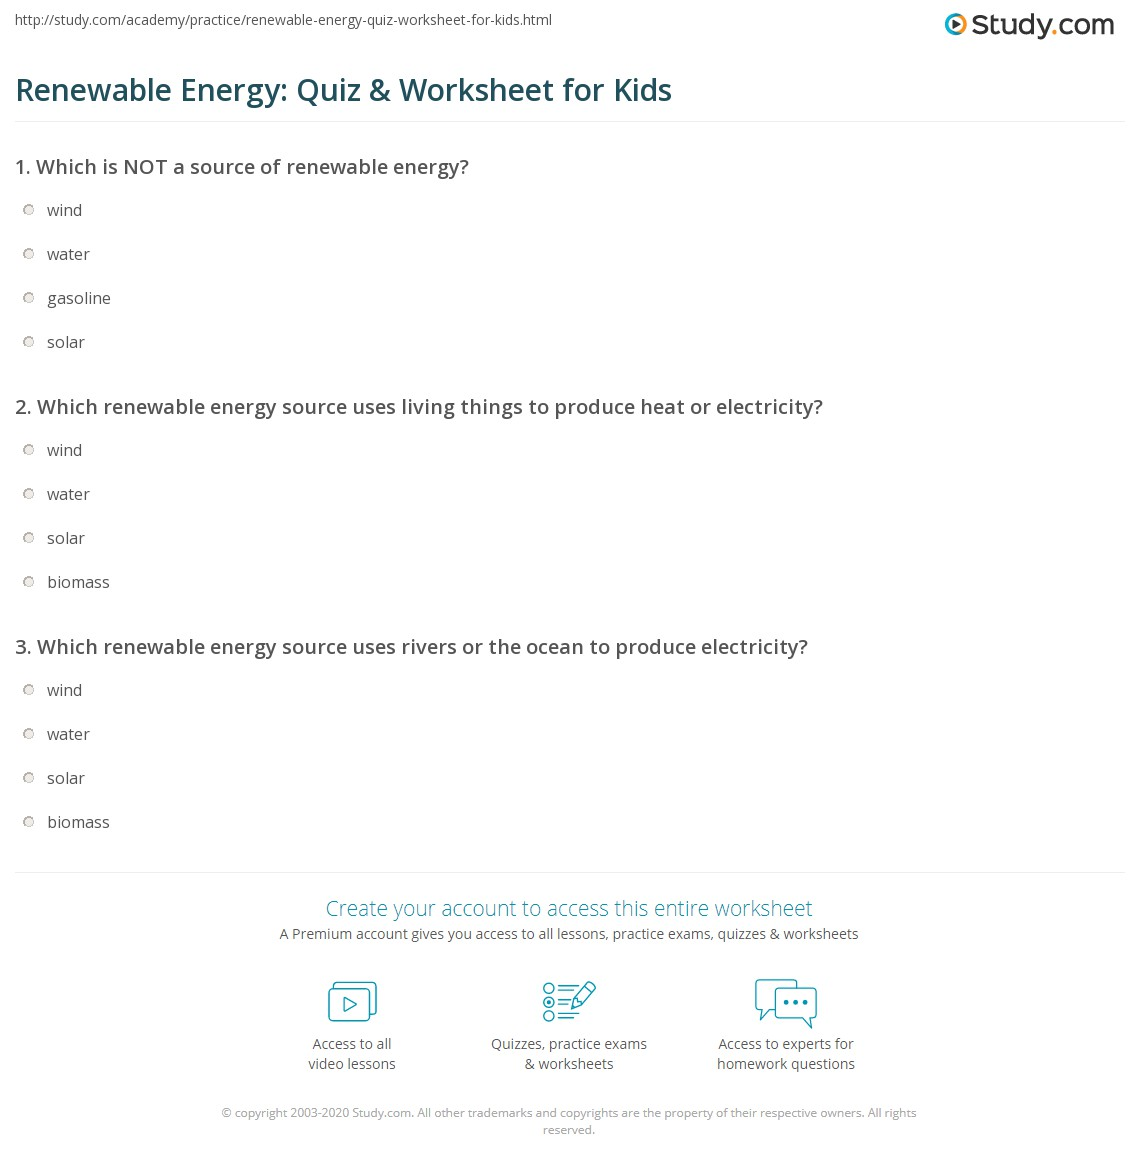 Renewable Energy: Quiz & Worksheet for Kids | Study.com